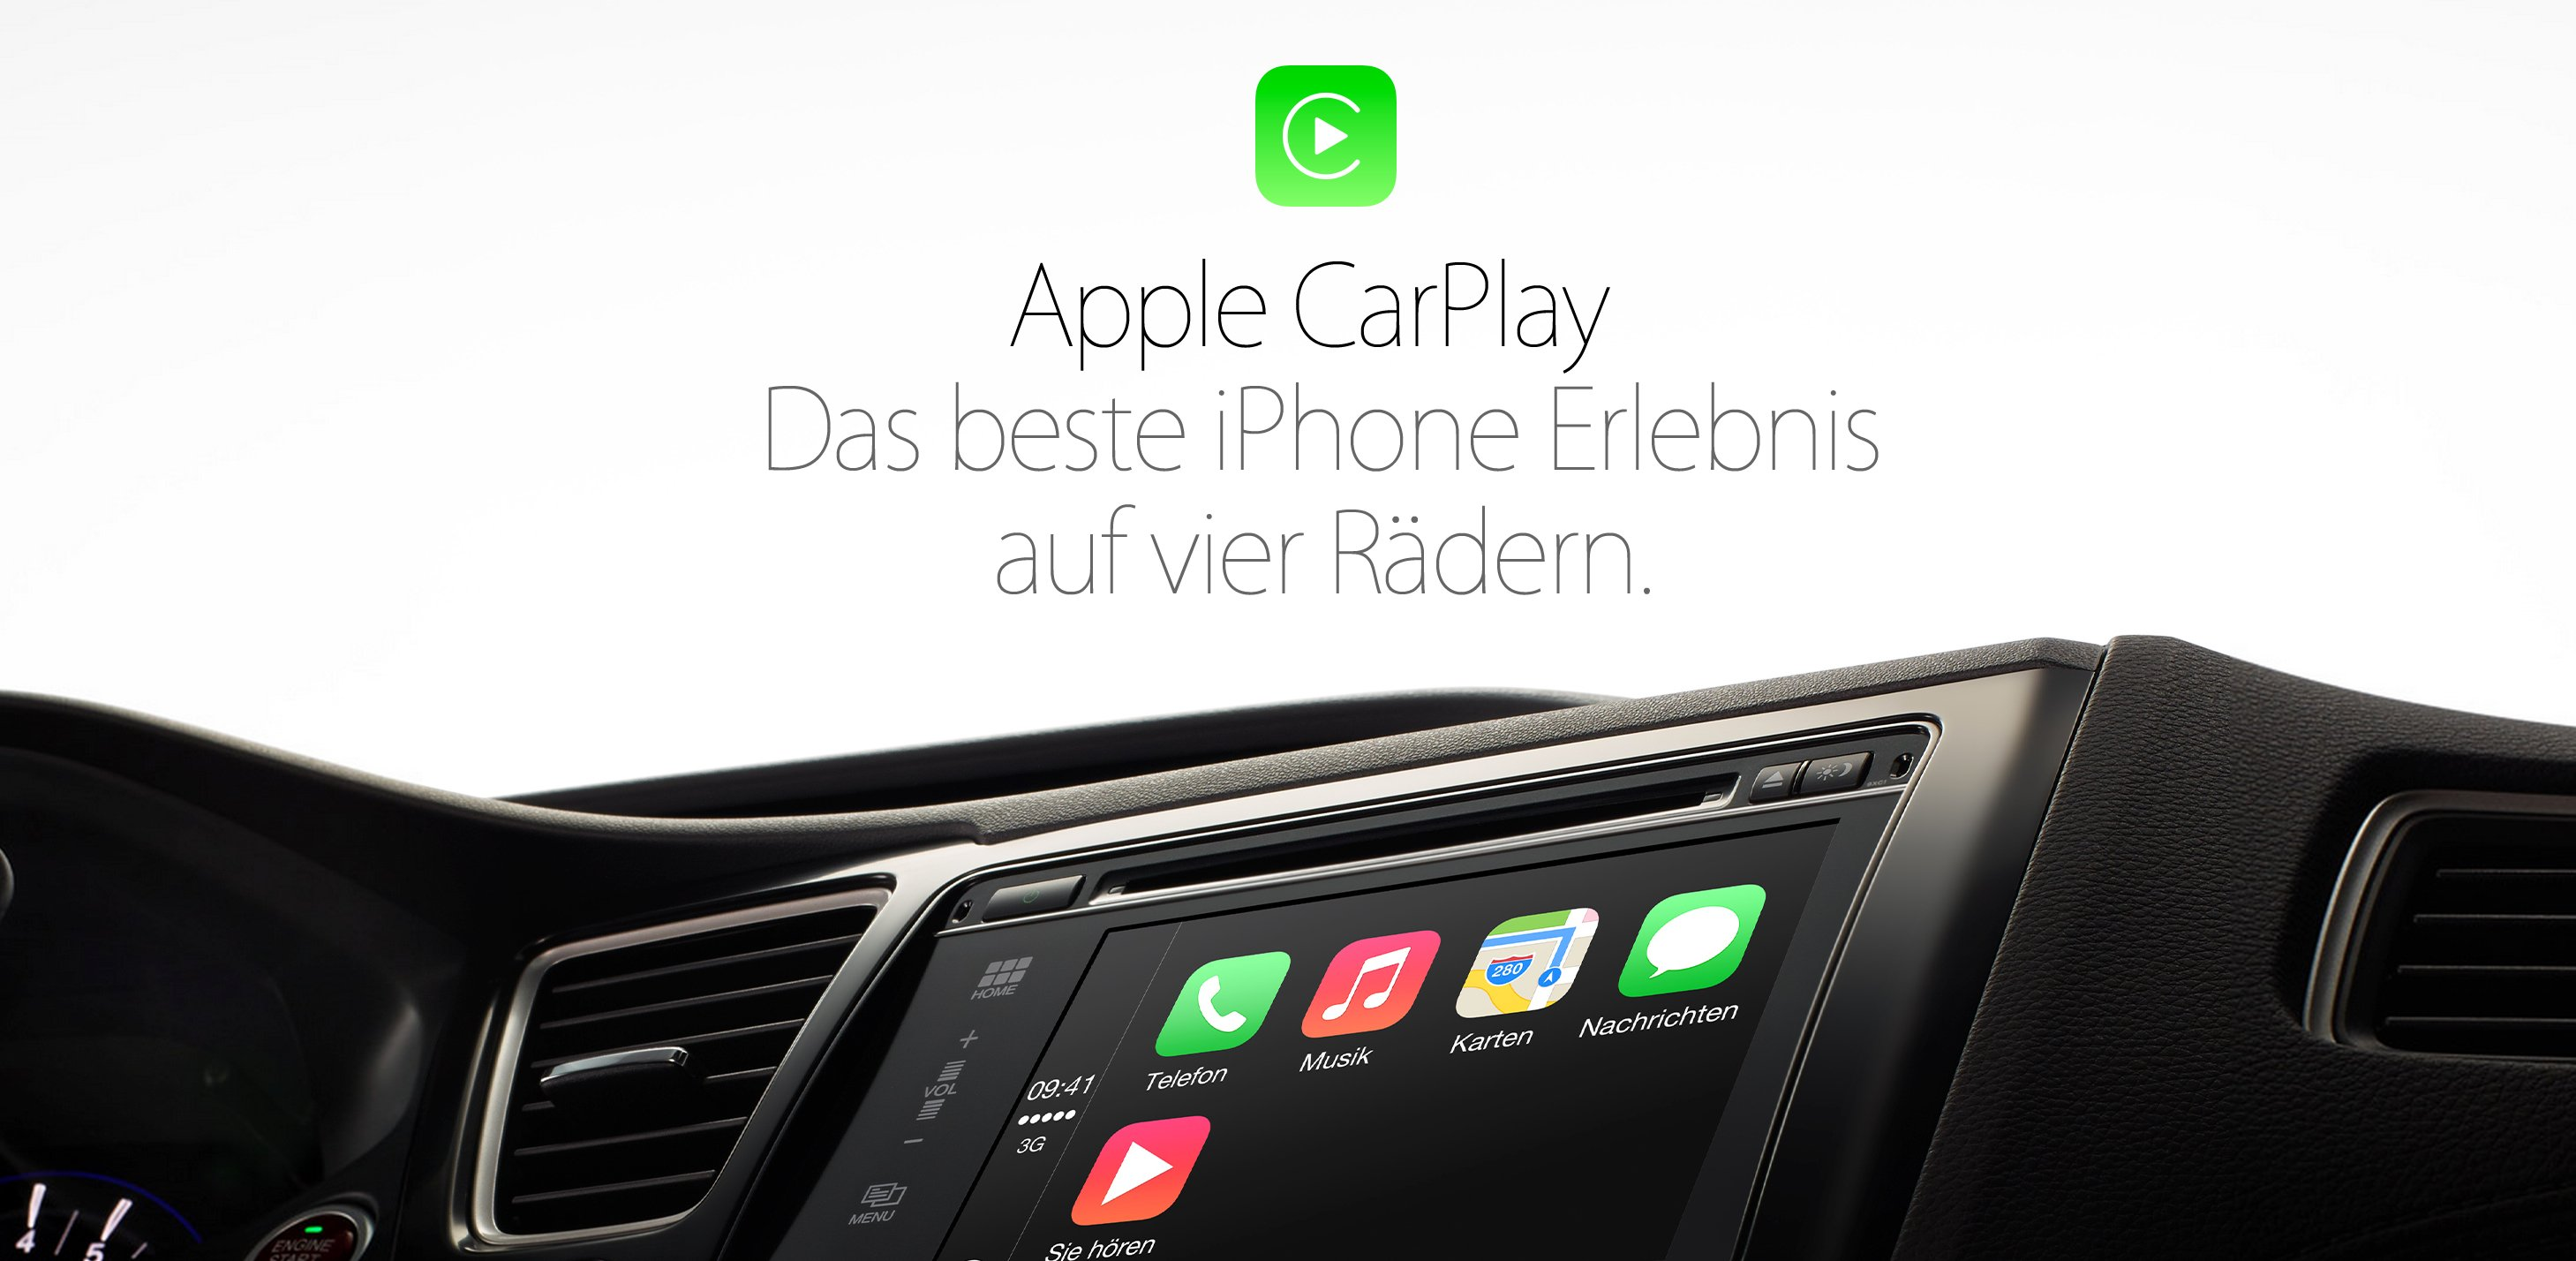 apple carplay mit audi bmw mercedes benz aber ohne vw. Black Bedroom Furniture Sets. Home Design Ideas